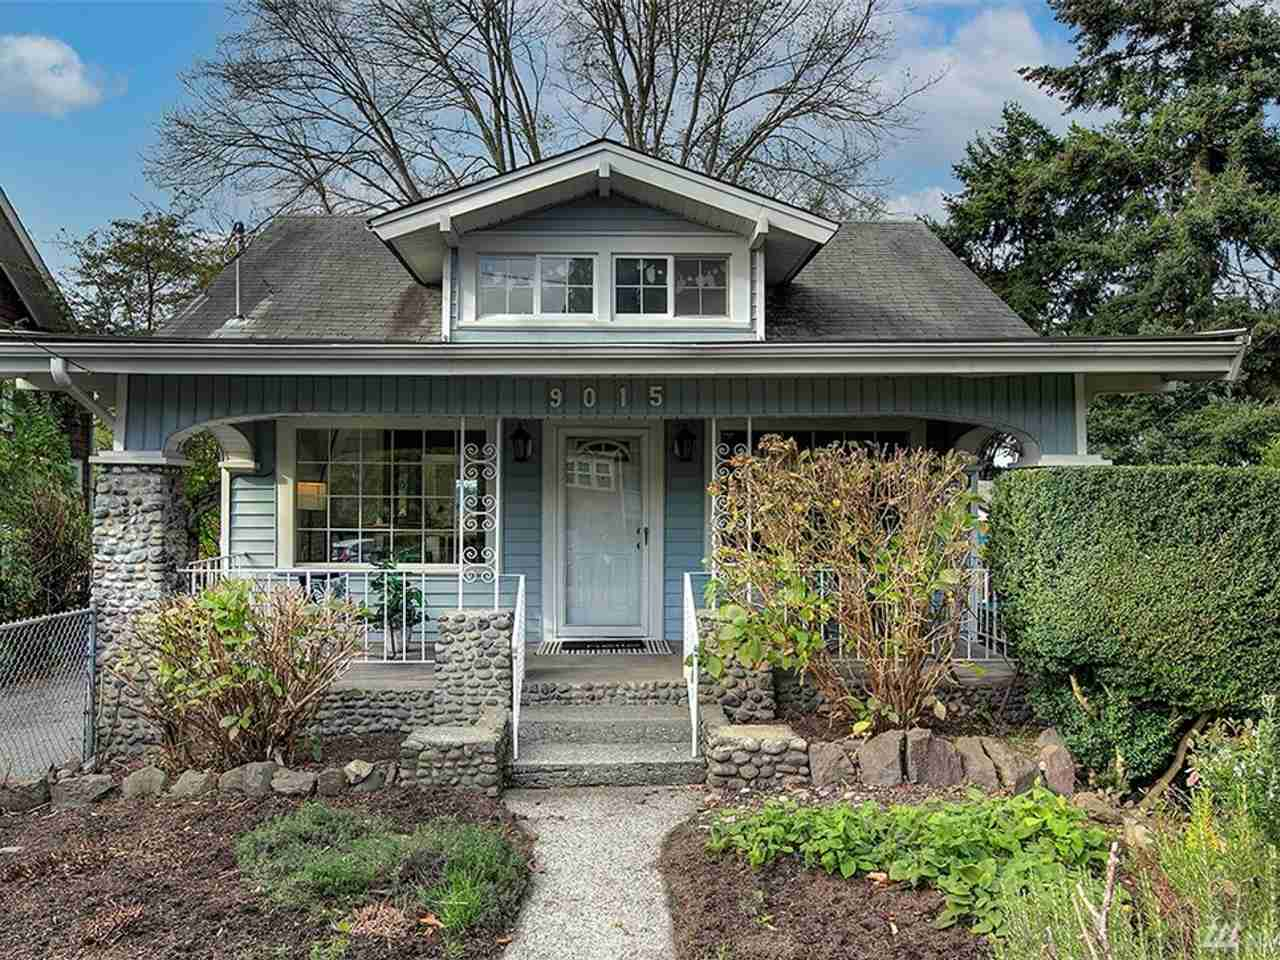 9015 Phinney Ave N Seattle, WA, 98103